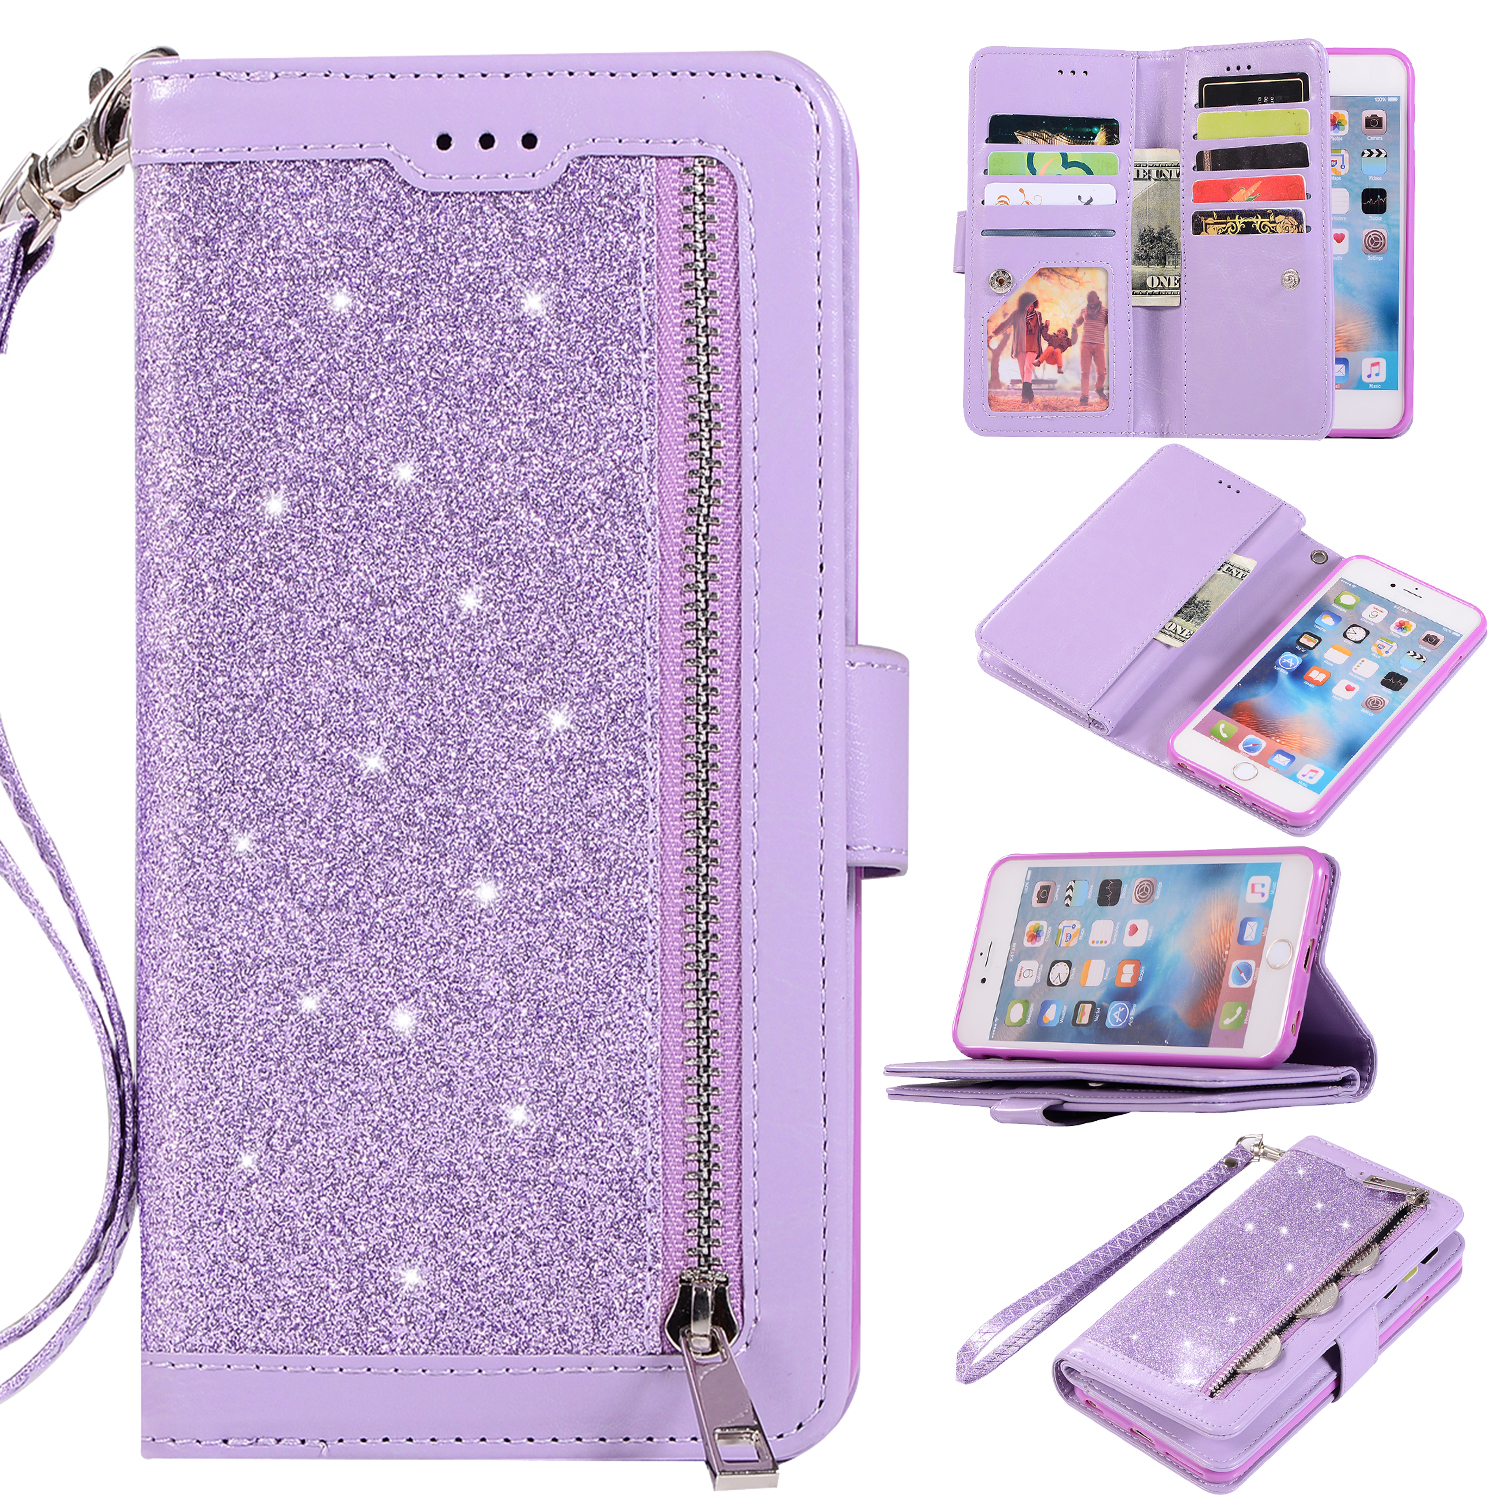 Zipper Wallet Case for iPhone 6S Plus iPhone 6 Plus 5.5-inch, Allytech Bling Glitter Leather Case with 9 Credit Card Holder Flip Magnetic Closure Stand Cover with Cash Pocket and Hand Strap, Purple